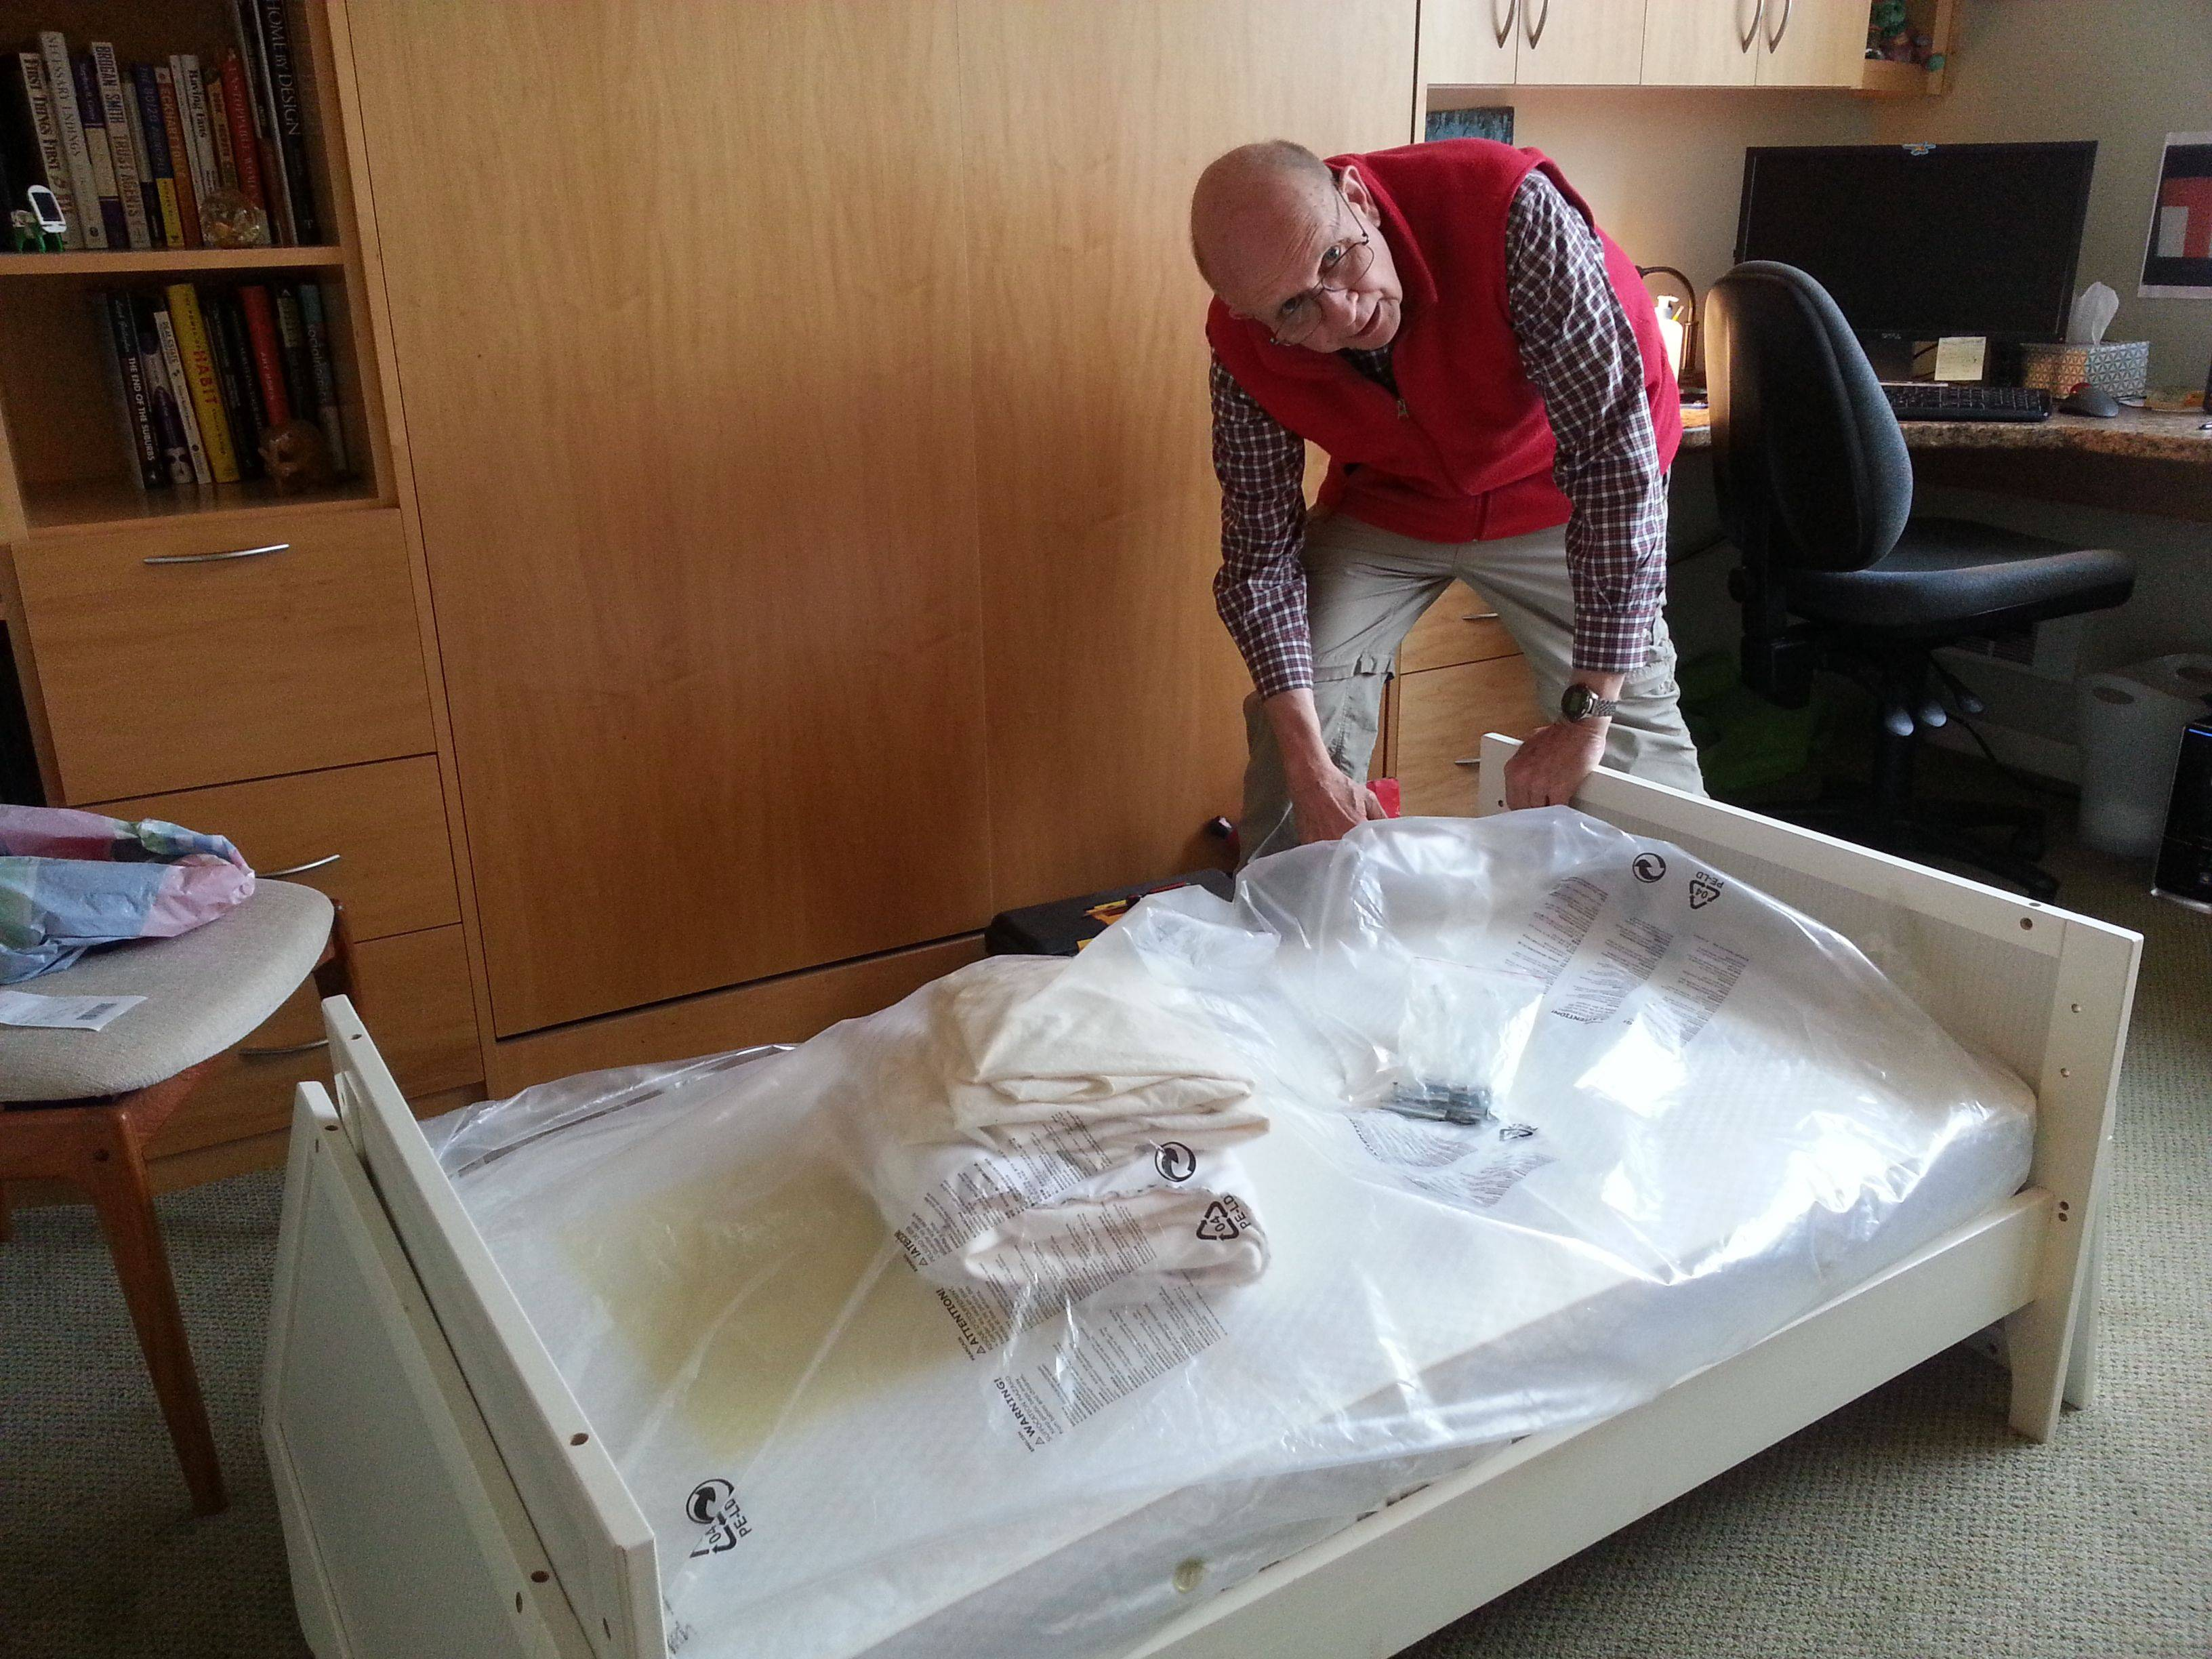 Assembling the toddler bed